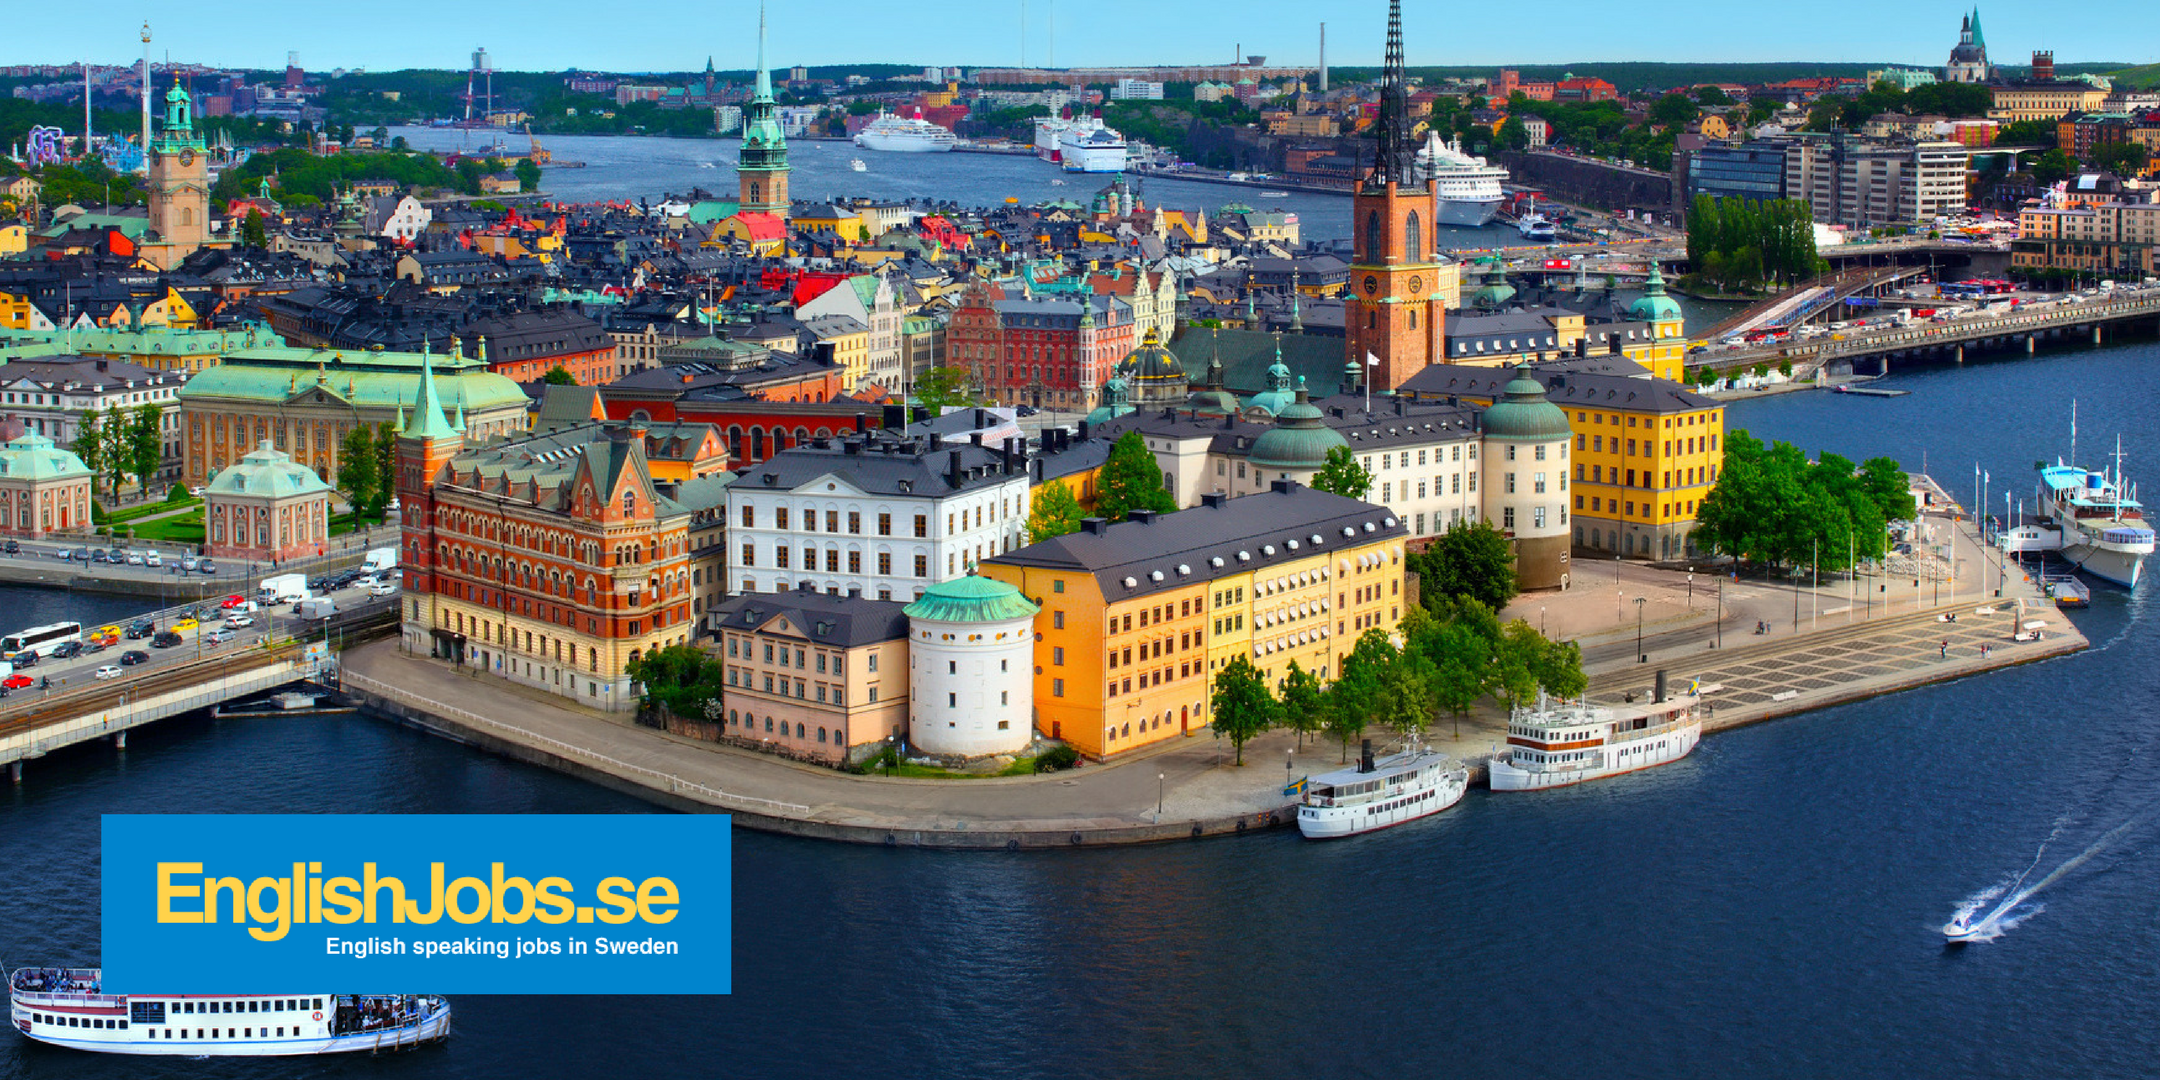 Work in Europe (Sweden, Denmark, Germany) - Your job search from Montreal to Stockholm